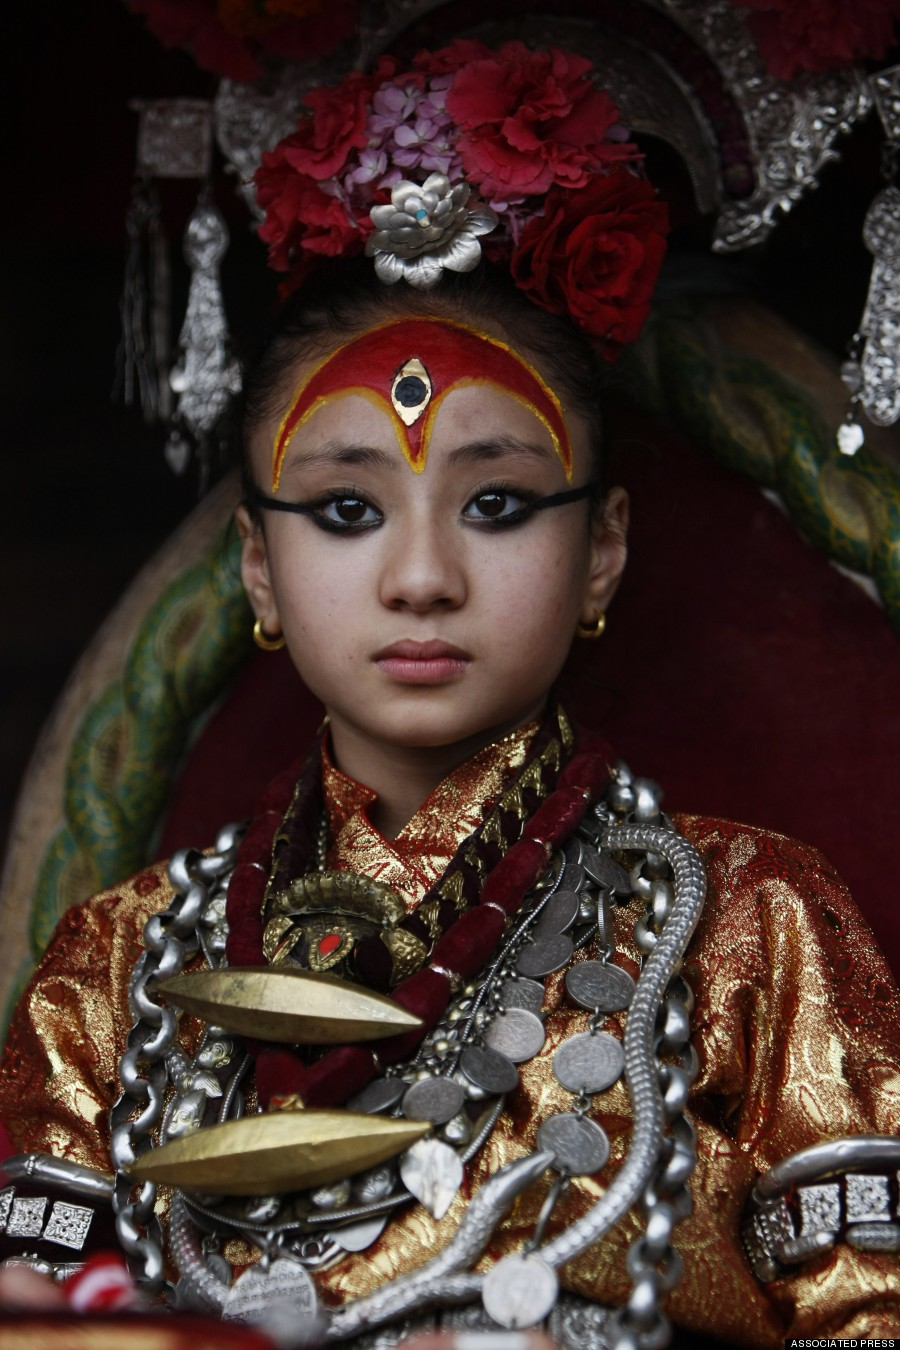 Nepal's living goddess locally known as Kumari, Samita Bajracharya, watches the last day of Rato Machhendranath chariot festival in Patan, outskirts of Katmandu, Nepal, Sunday, June 24, 2012. Kumari, meaning virgin in Nepalese, are young pre-pubescent girls and are considered by devotees to be incarnations of a Hindu goddess. Selected as toddlers, living goddesses usually keep their positions until they reach puberty. (AP Photo/Binod Joshi)